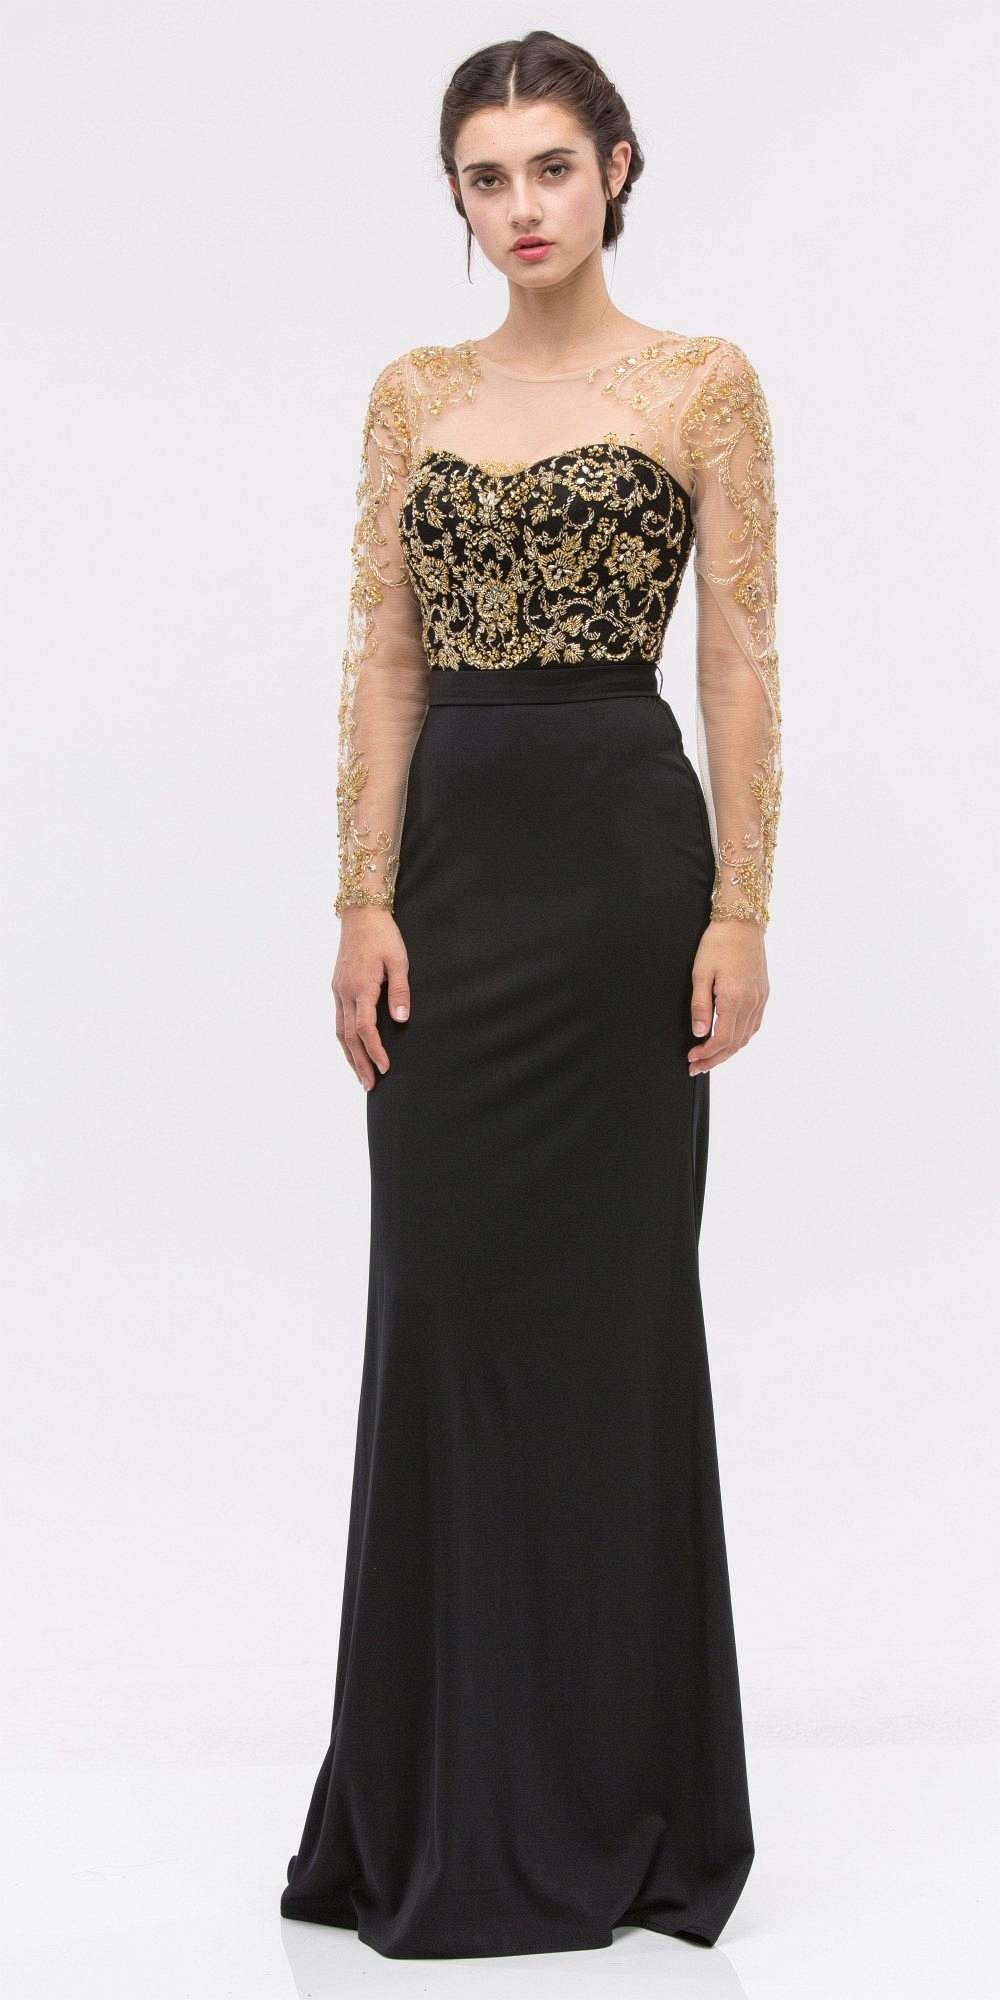 Embellished Mermaid Prom Gown Blackgold With Illusion Long Sleeve